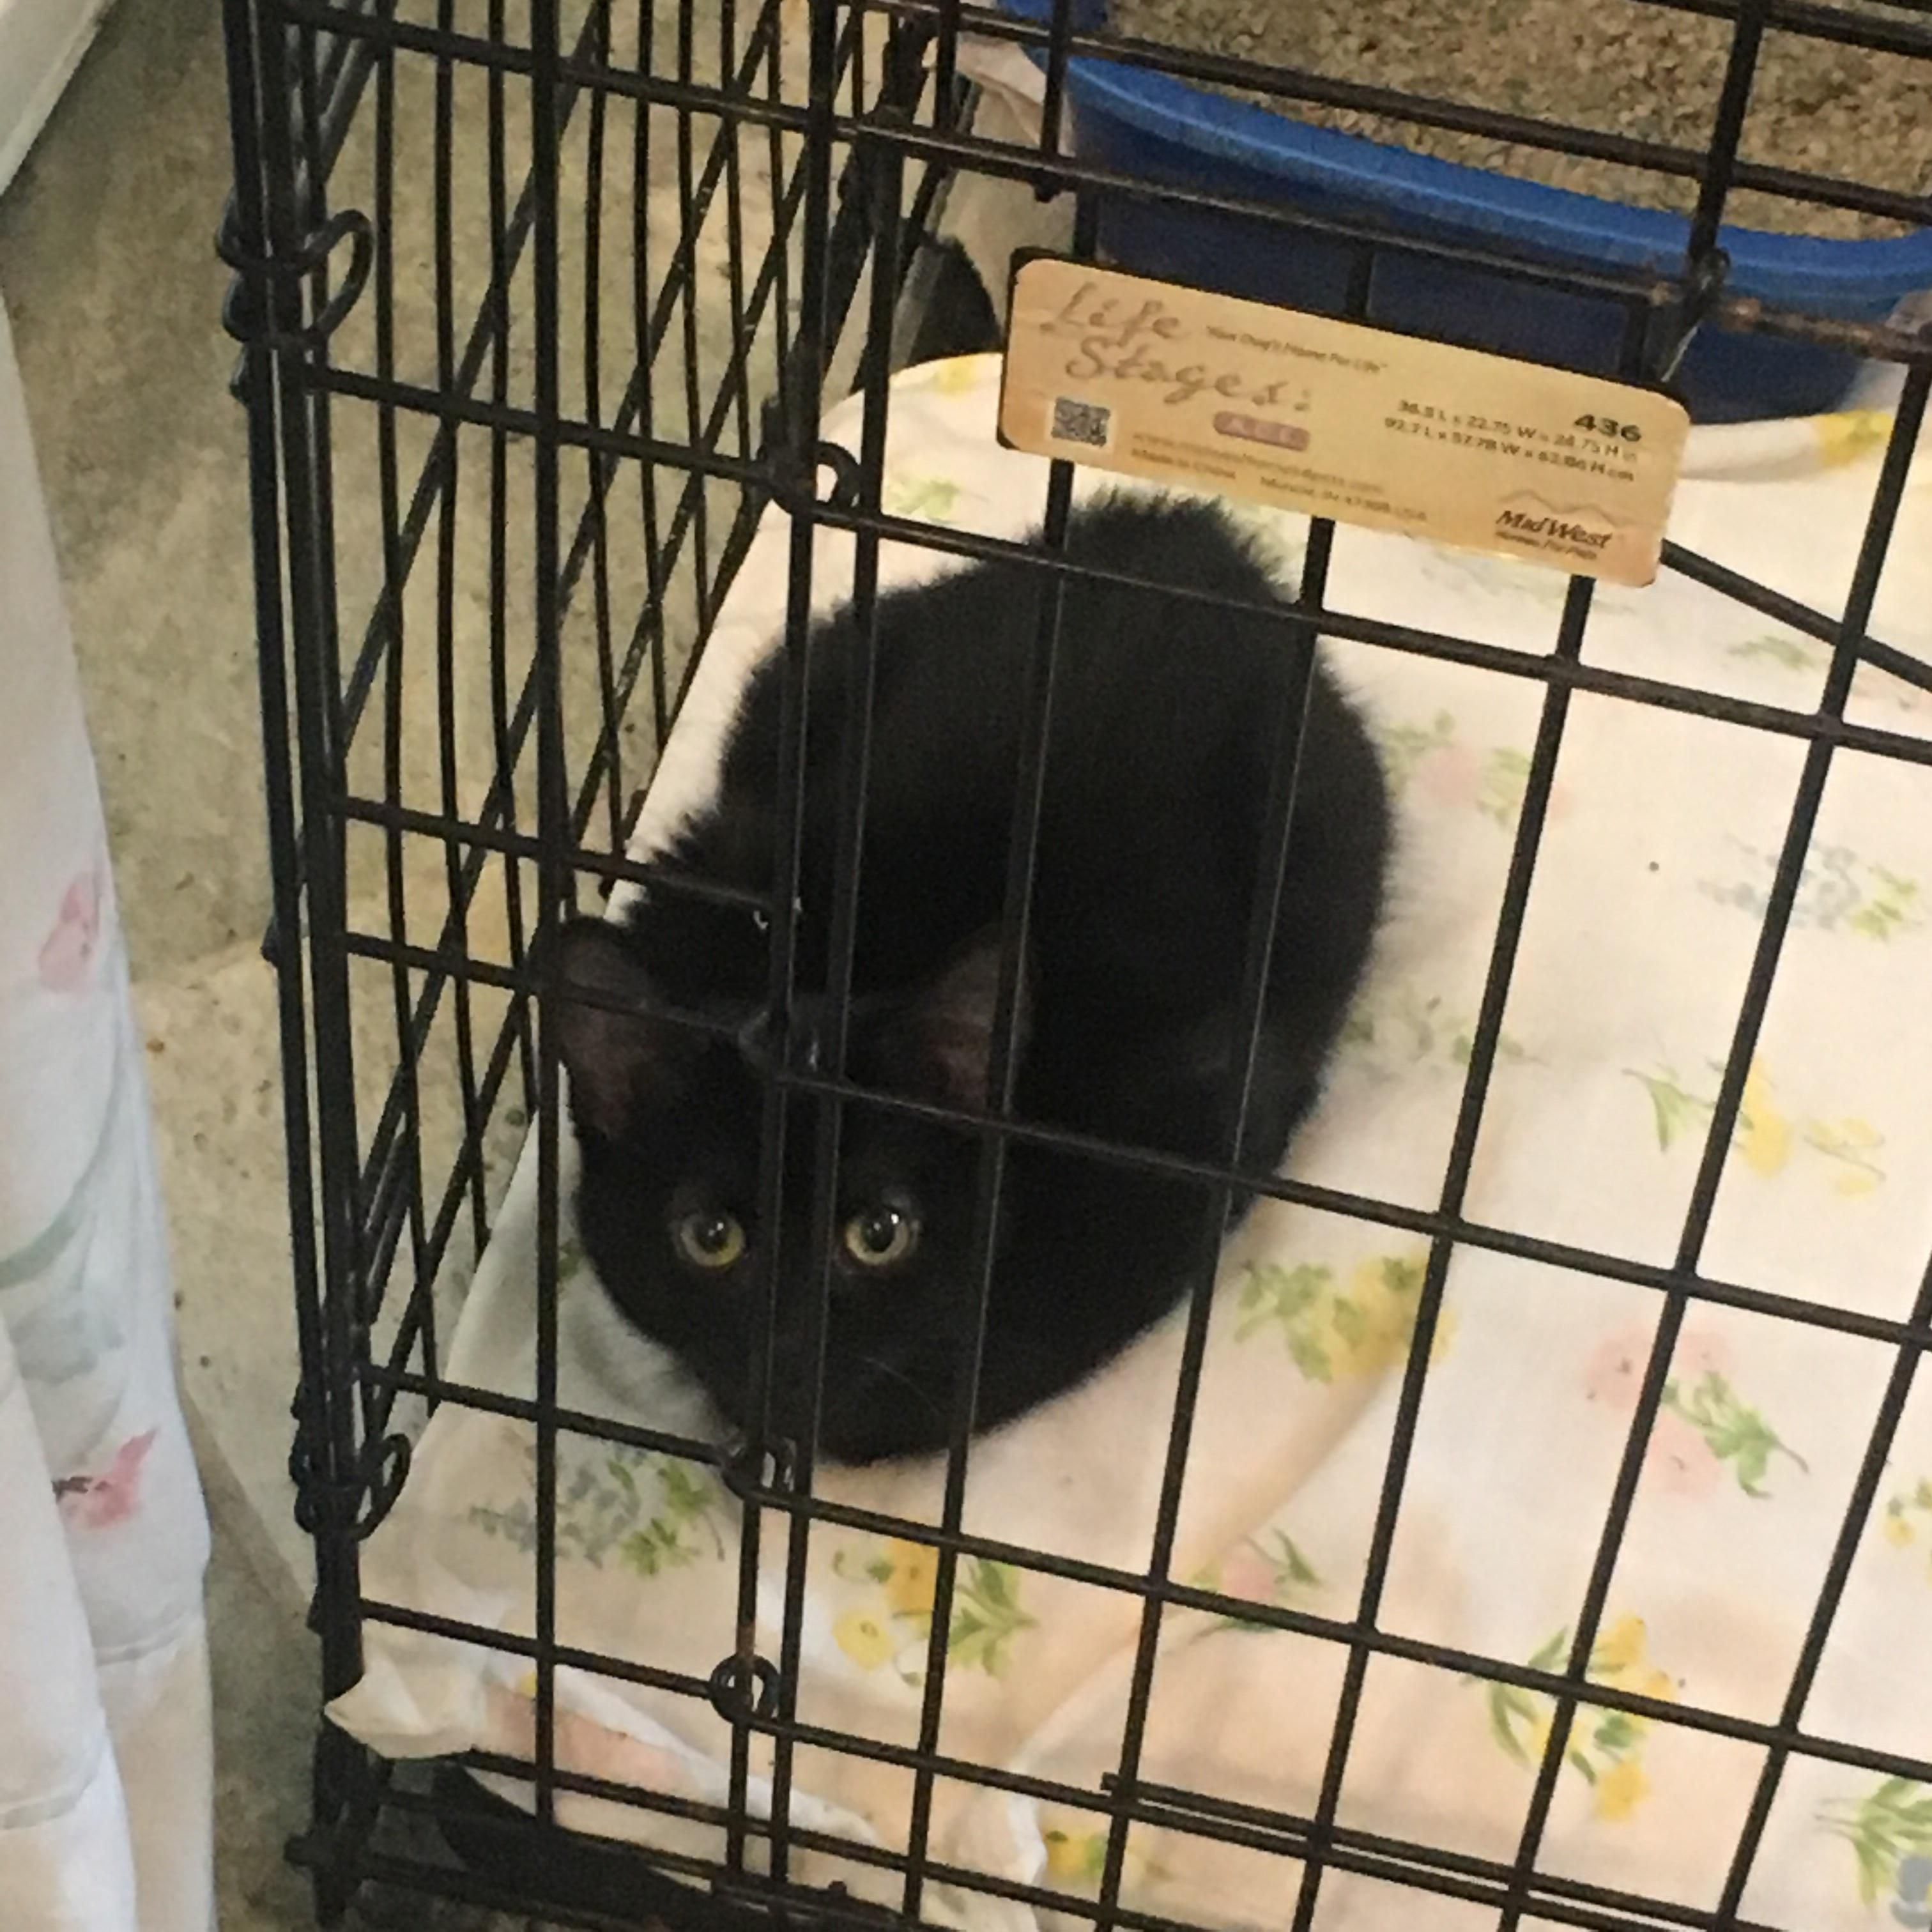 Look At This Lil Kitty Might Actually Be A Soot Sprite From The Shelter I Volunteer At Cat Shelter Cats And Kittens Cats